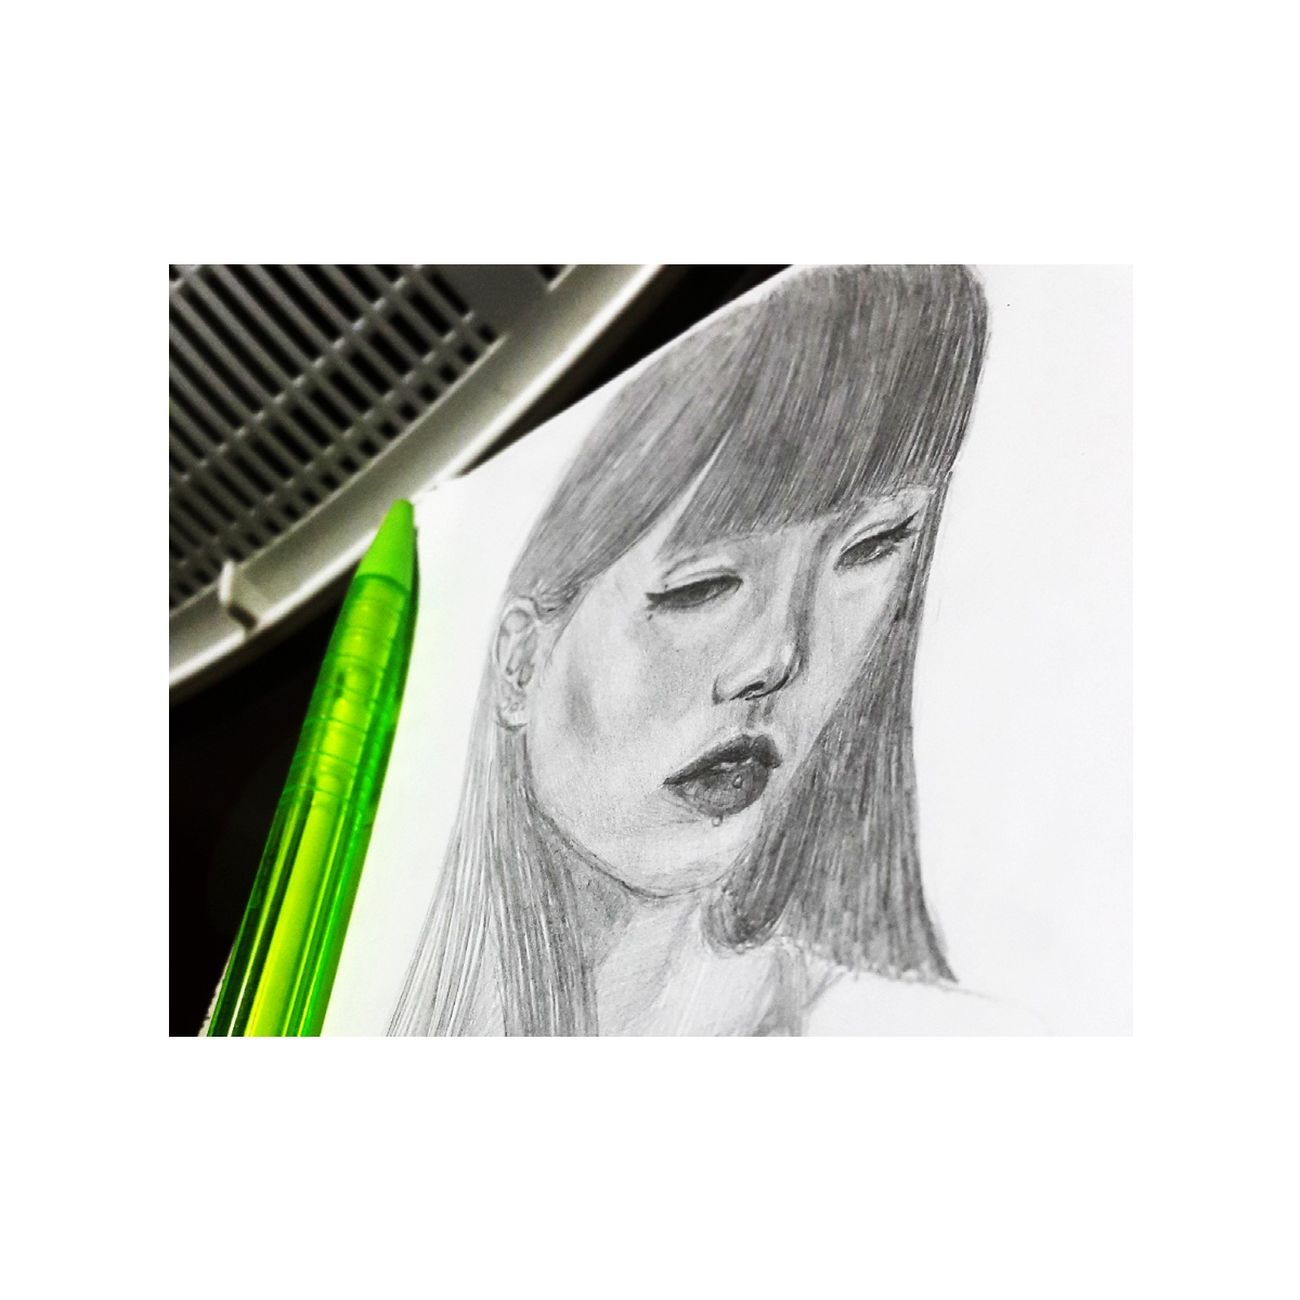 She's the tear in my heart 💘 Art Beauty Portrait Sketch MyArt Pencil Drawing Drawing ArtWork Sketchbook PracticeMakesPerfect Beginner Artist Philippines Study Passion Enjoying Life